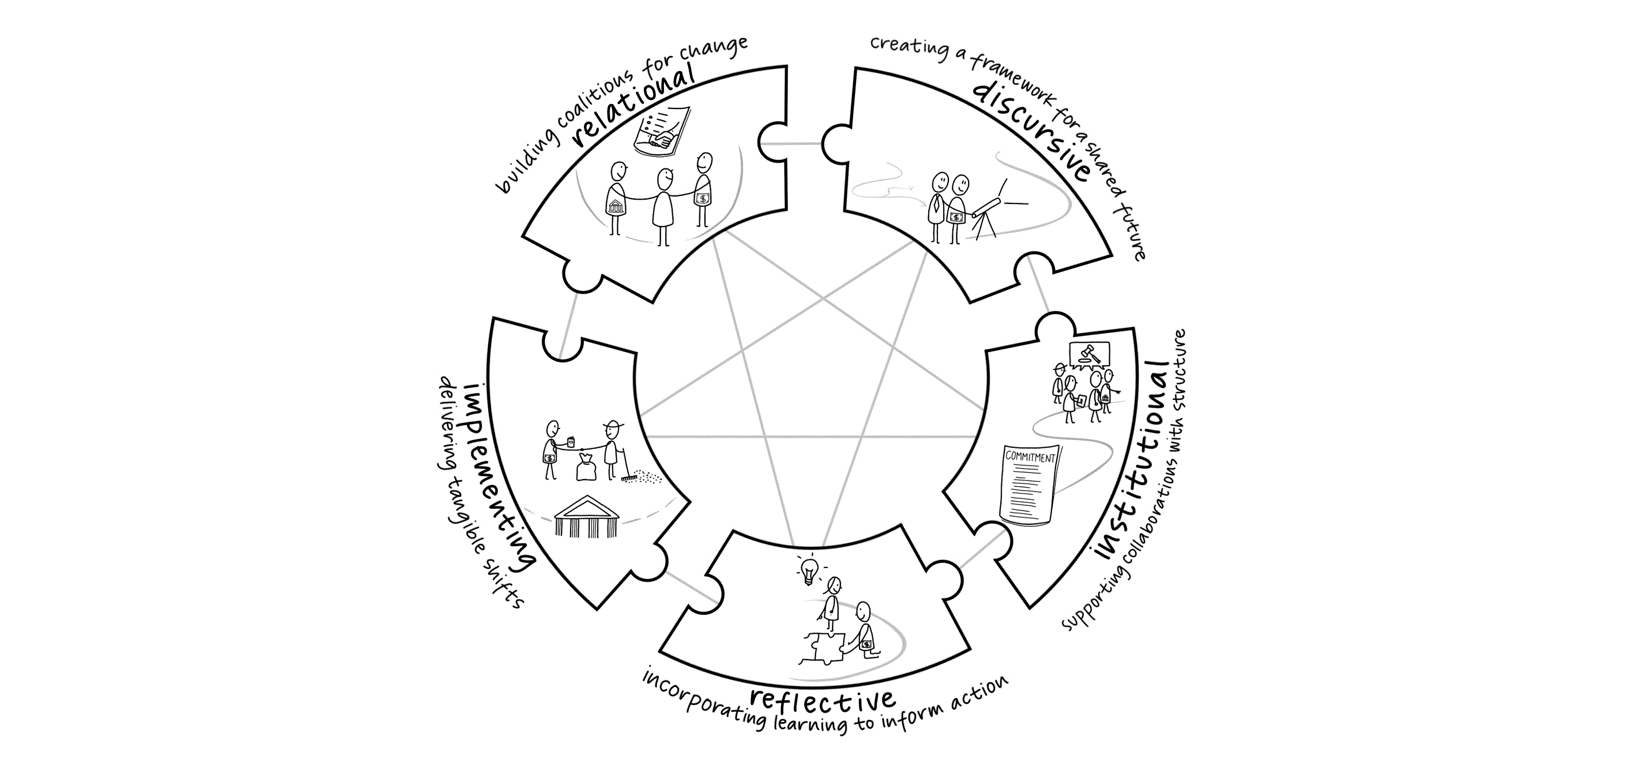 click on the image to see the 5 dimensions of collaborative transformation